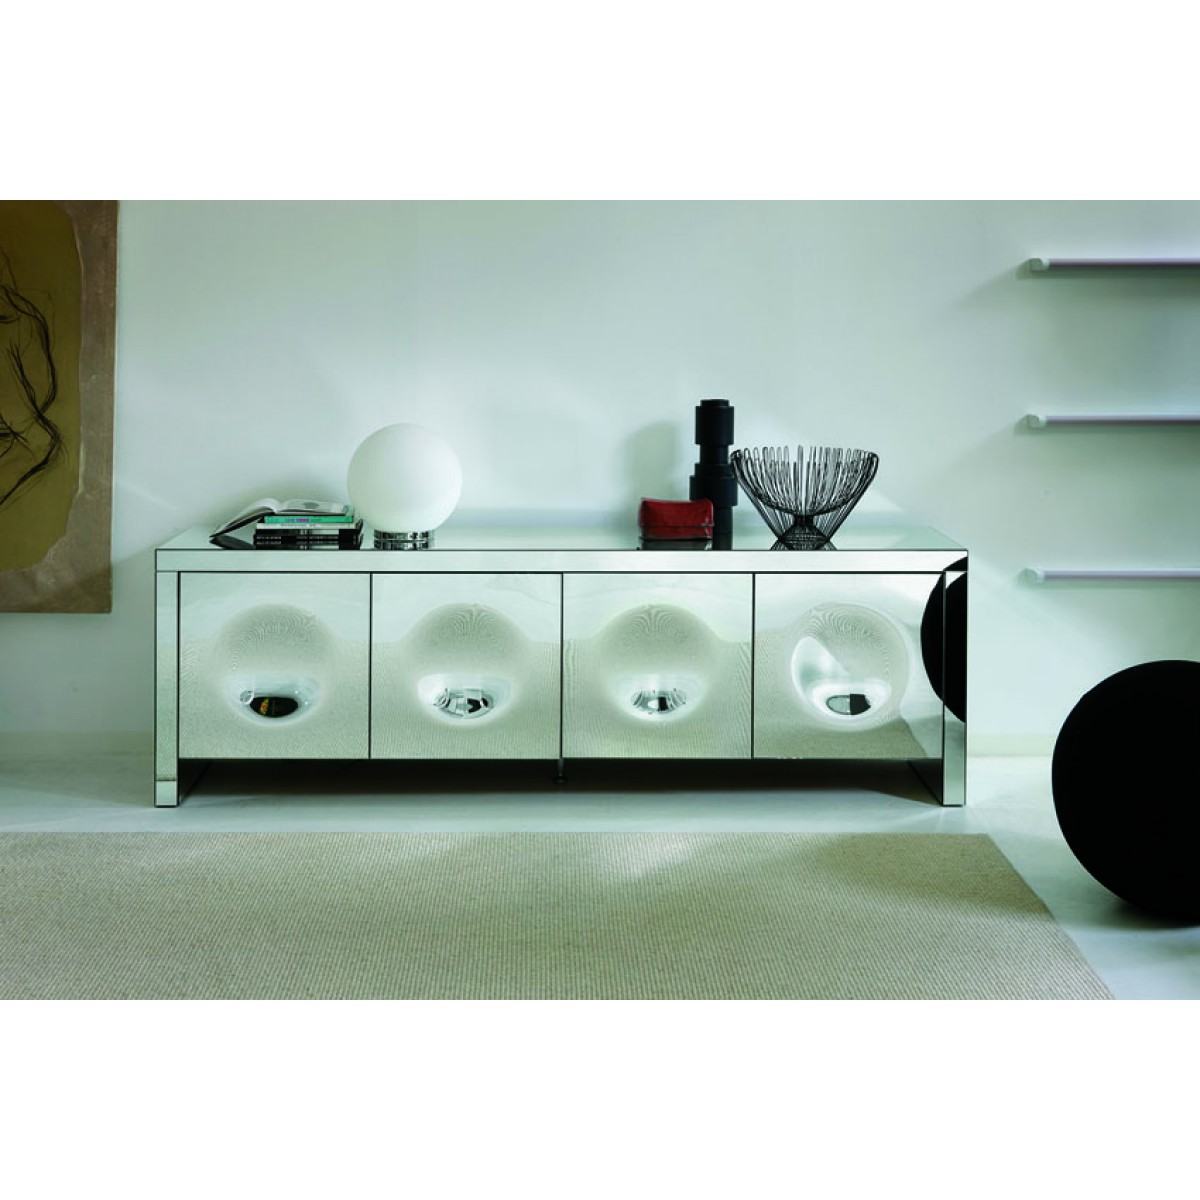 Adorable mirrored sideboard with knobs silver color and with decorative pattern design mirrored sideboard ideas